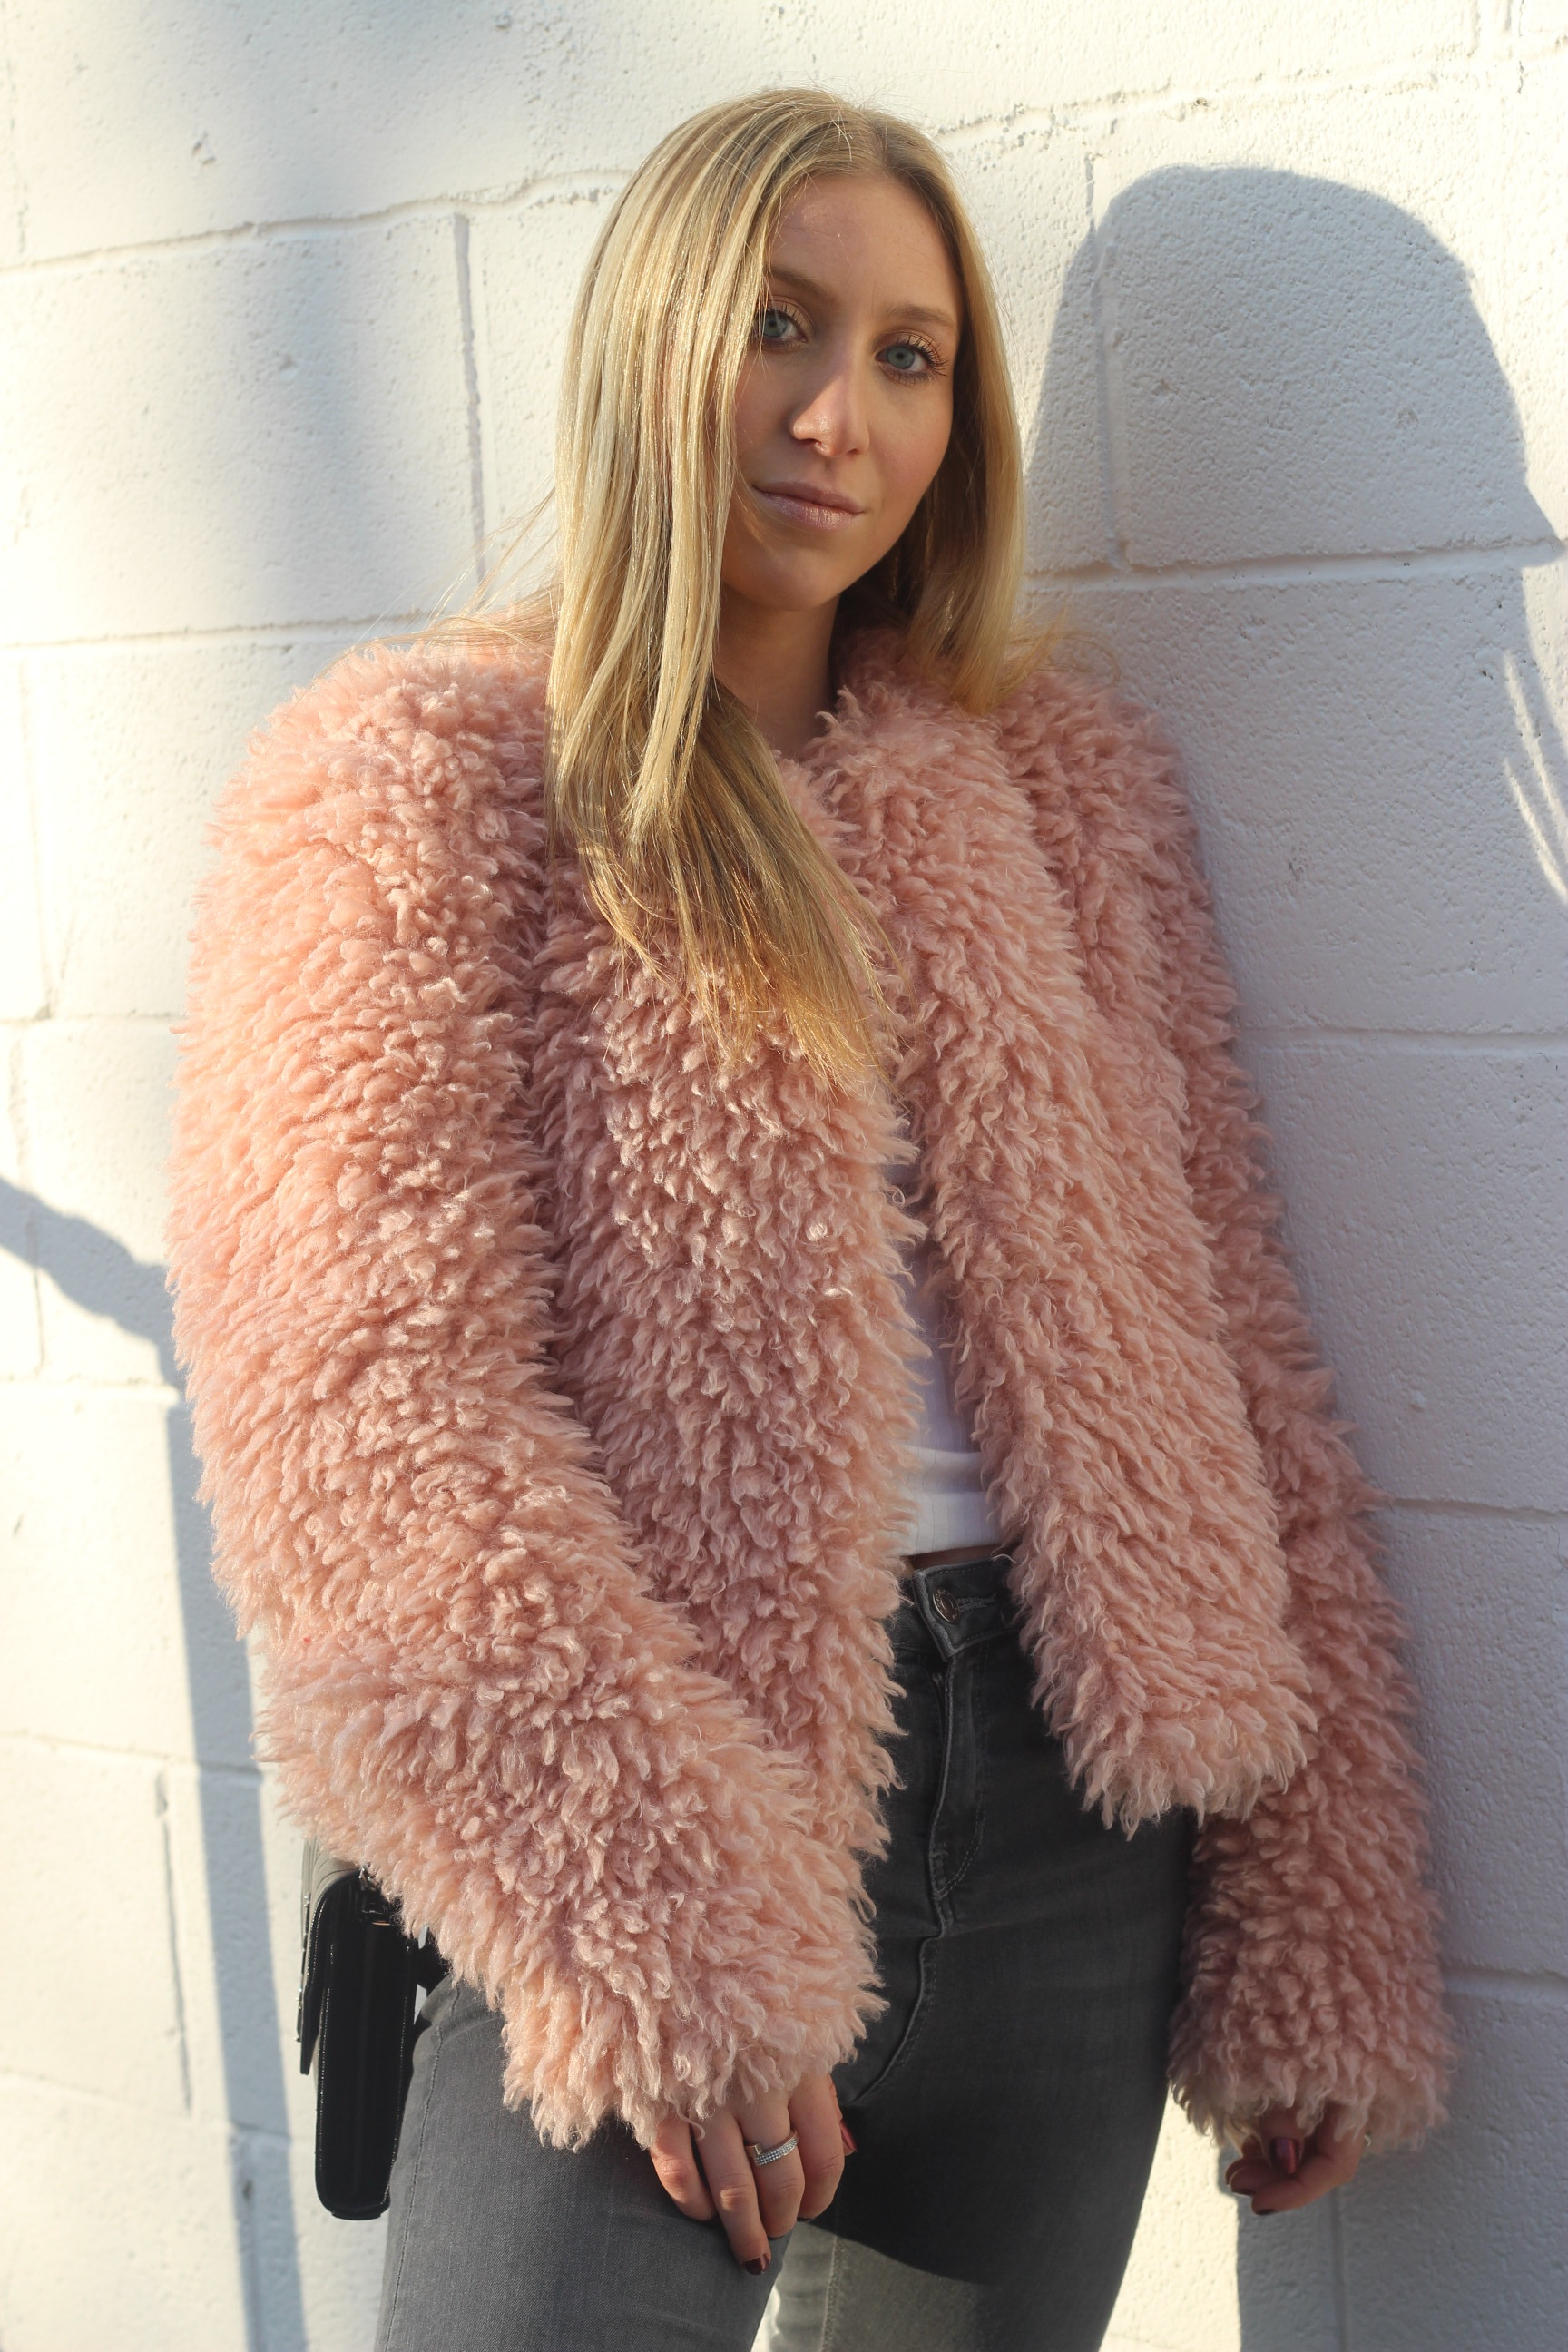 Carly of Au Courant Life in blush faux fur coat